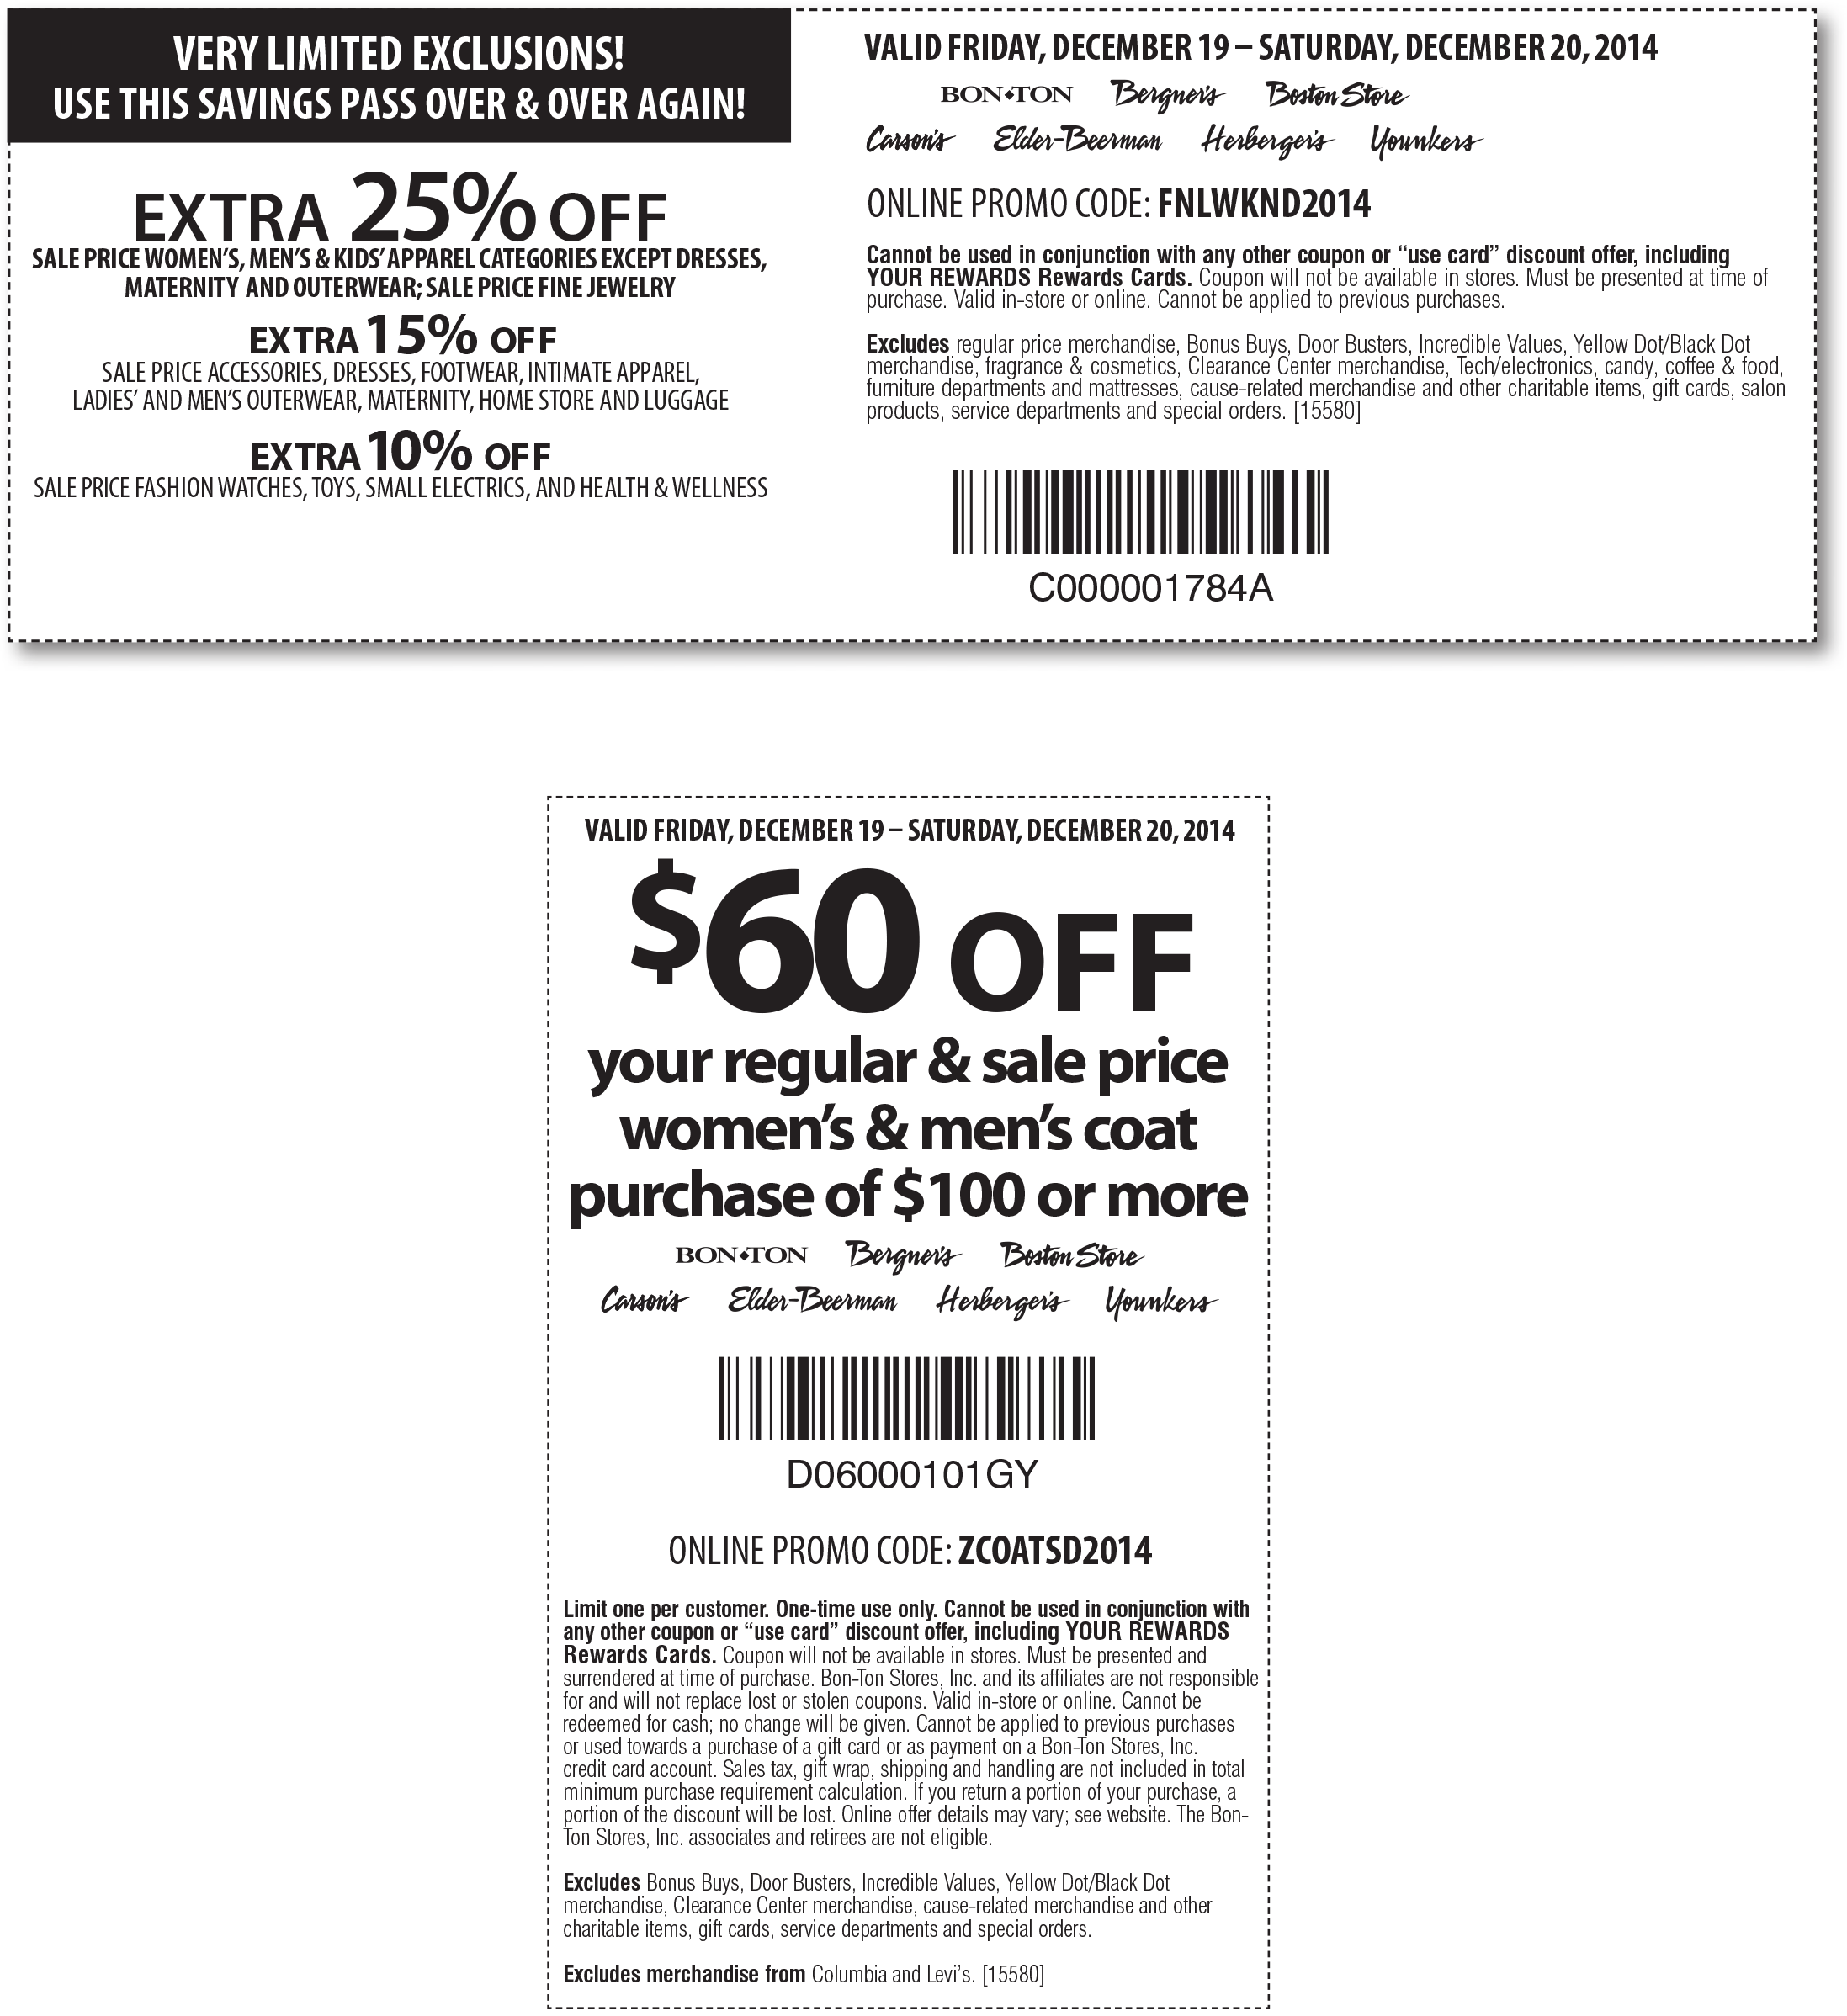 Carsons Coupon July 2018 Extra 25% off sale apparel today at Carsons, Bon Ton & sister stores, or online via promo code FNLWKND2014